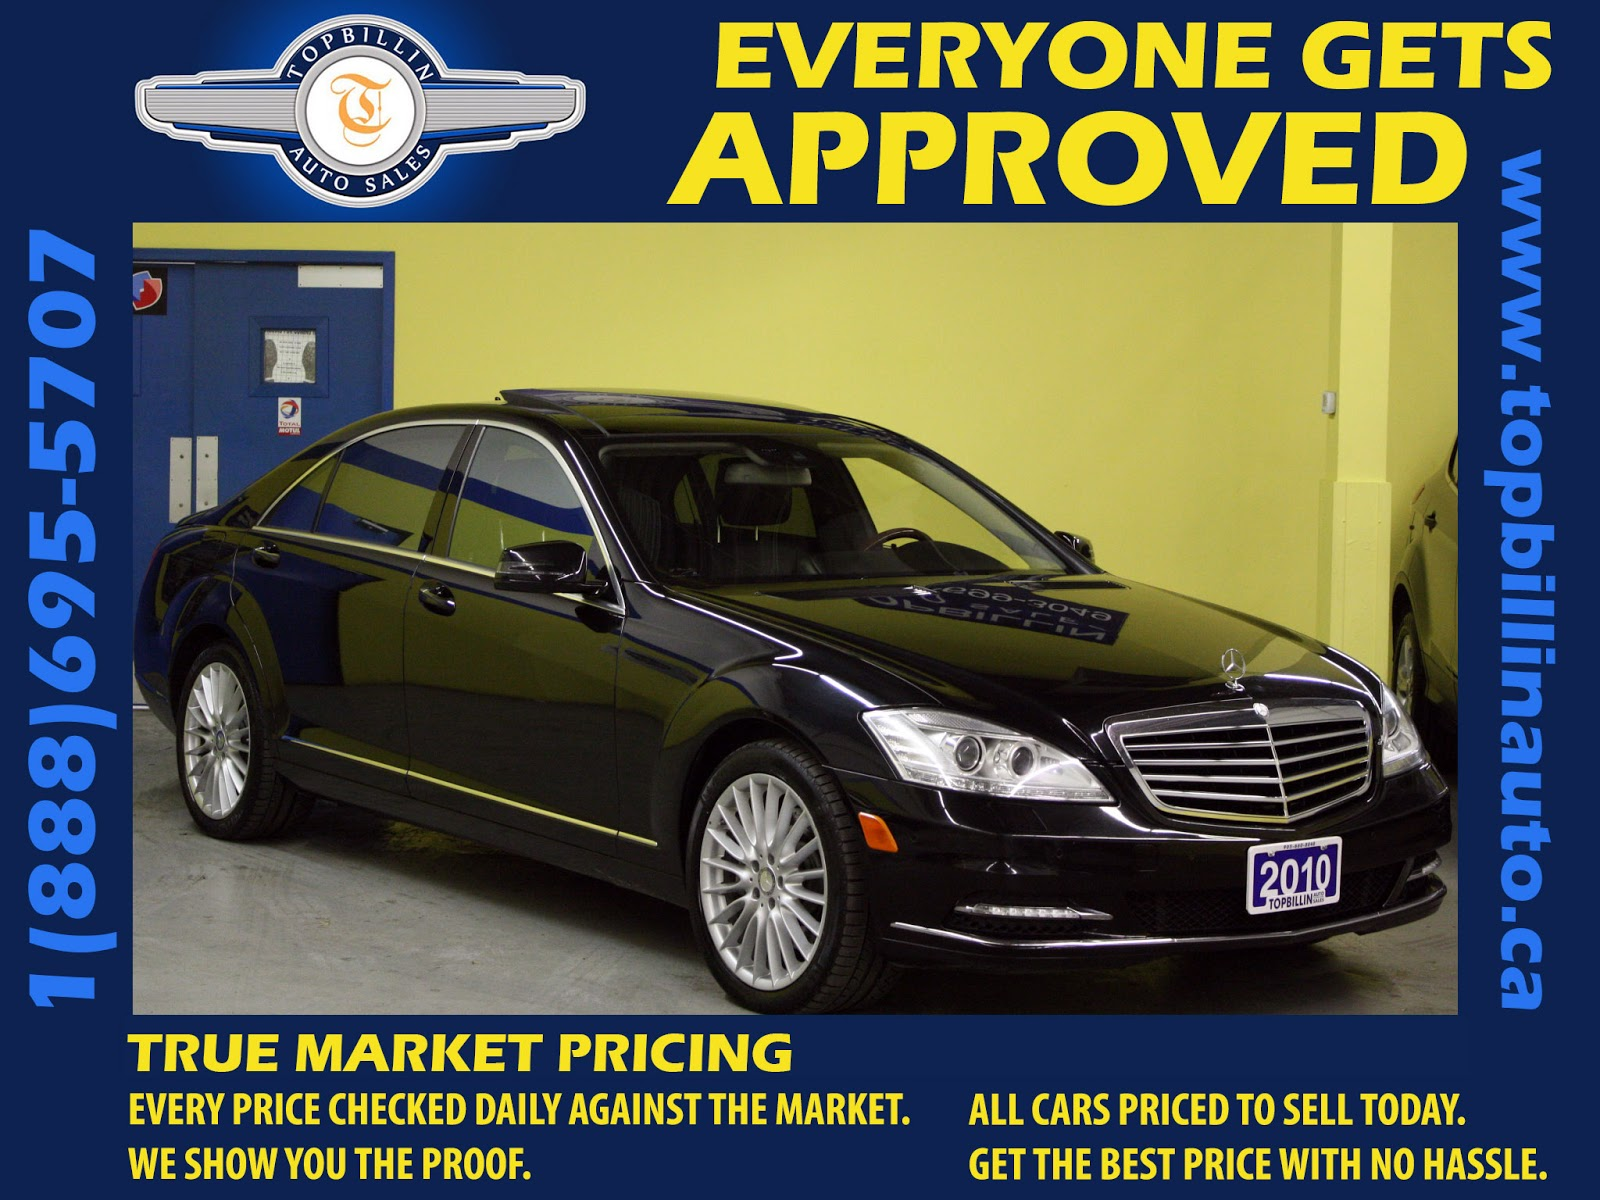 you re going to love the 2010 mercedes benz s class a 5 5 liter v 8 engine pairs with a sophisticated 7 speed automatic transmission and for added